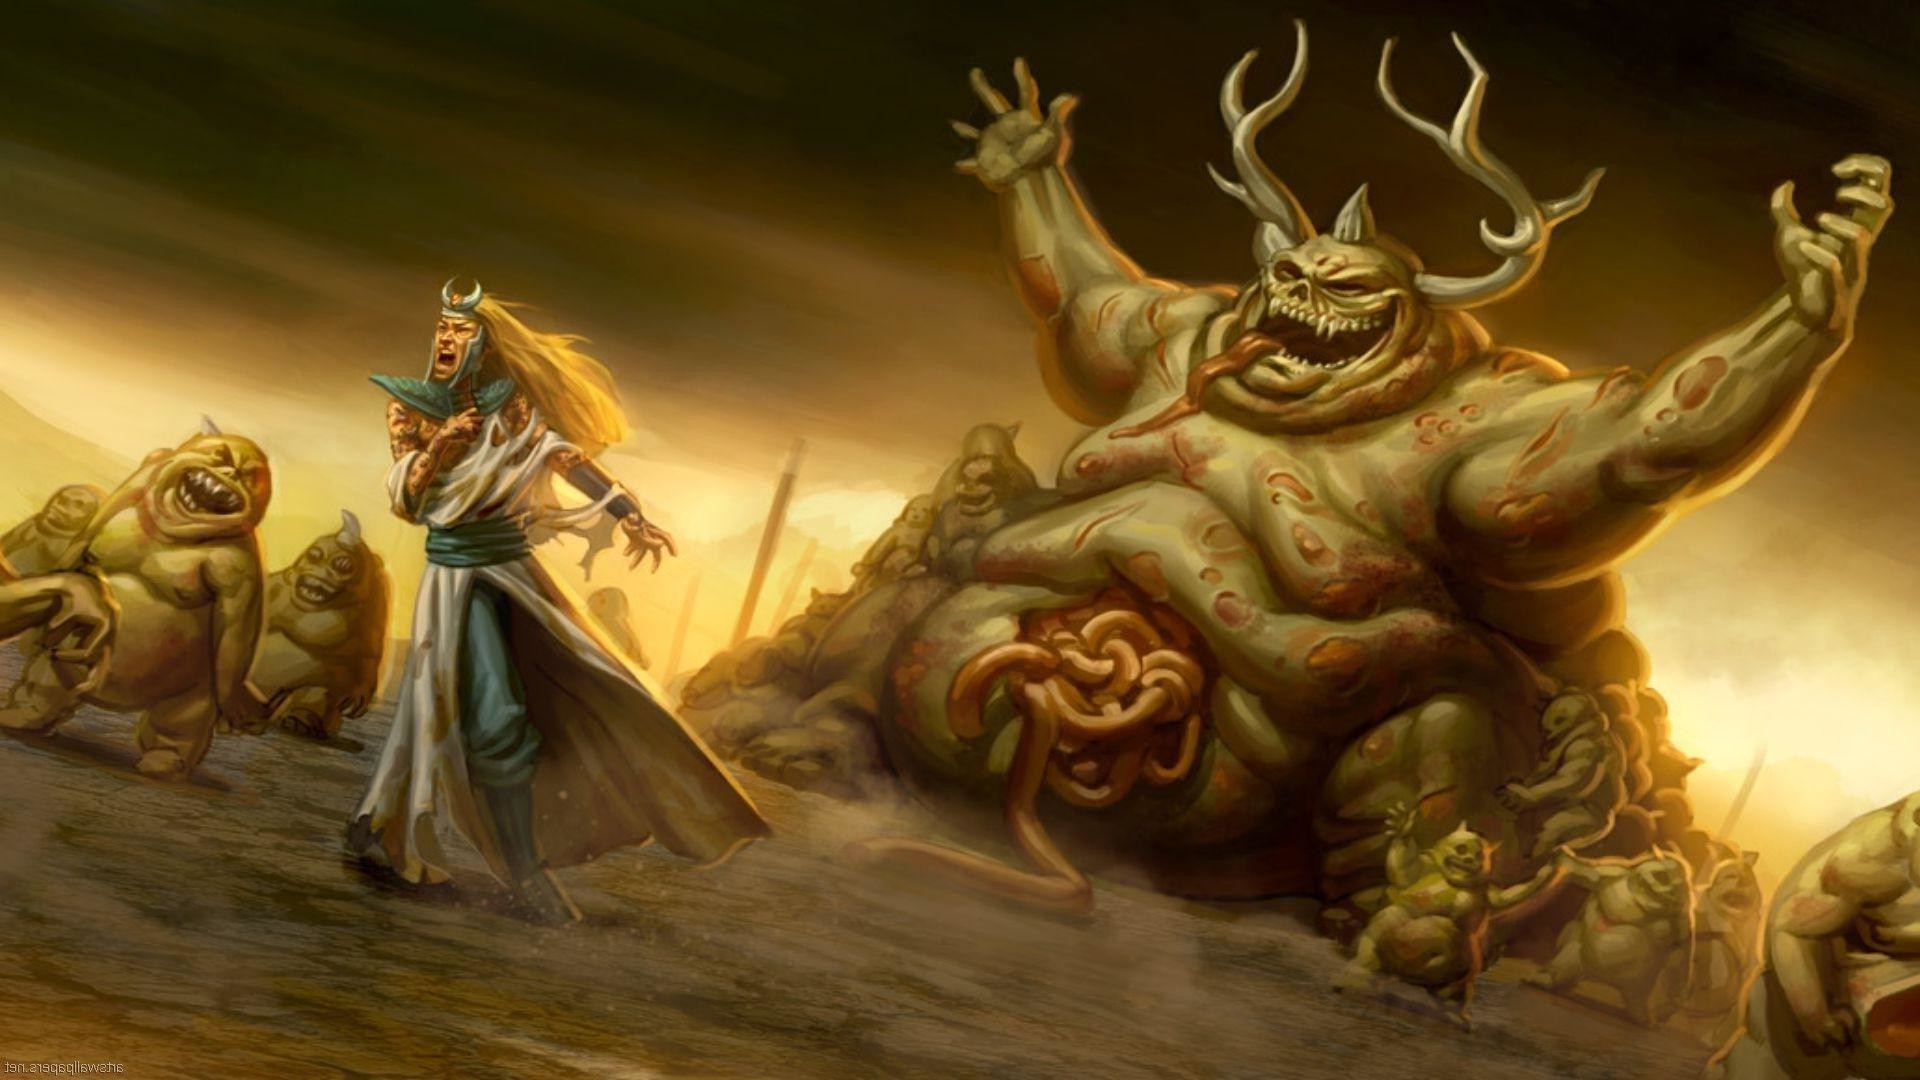 Warhammer Fantasy free desktop backgrounds and wallpapers